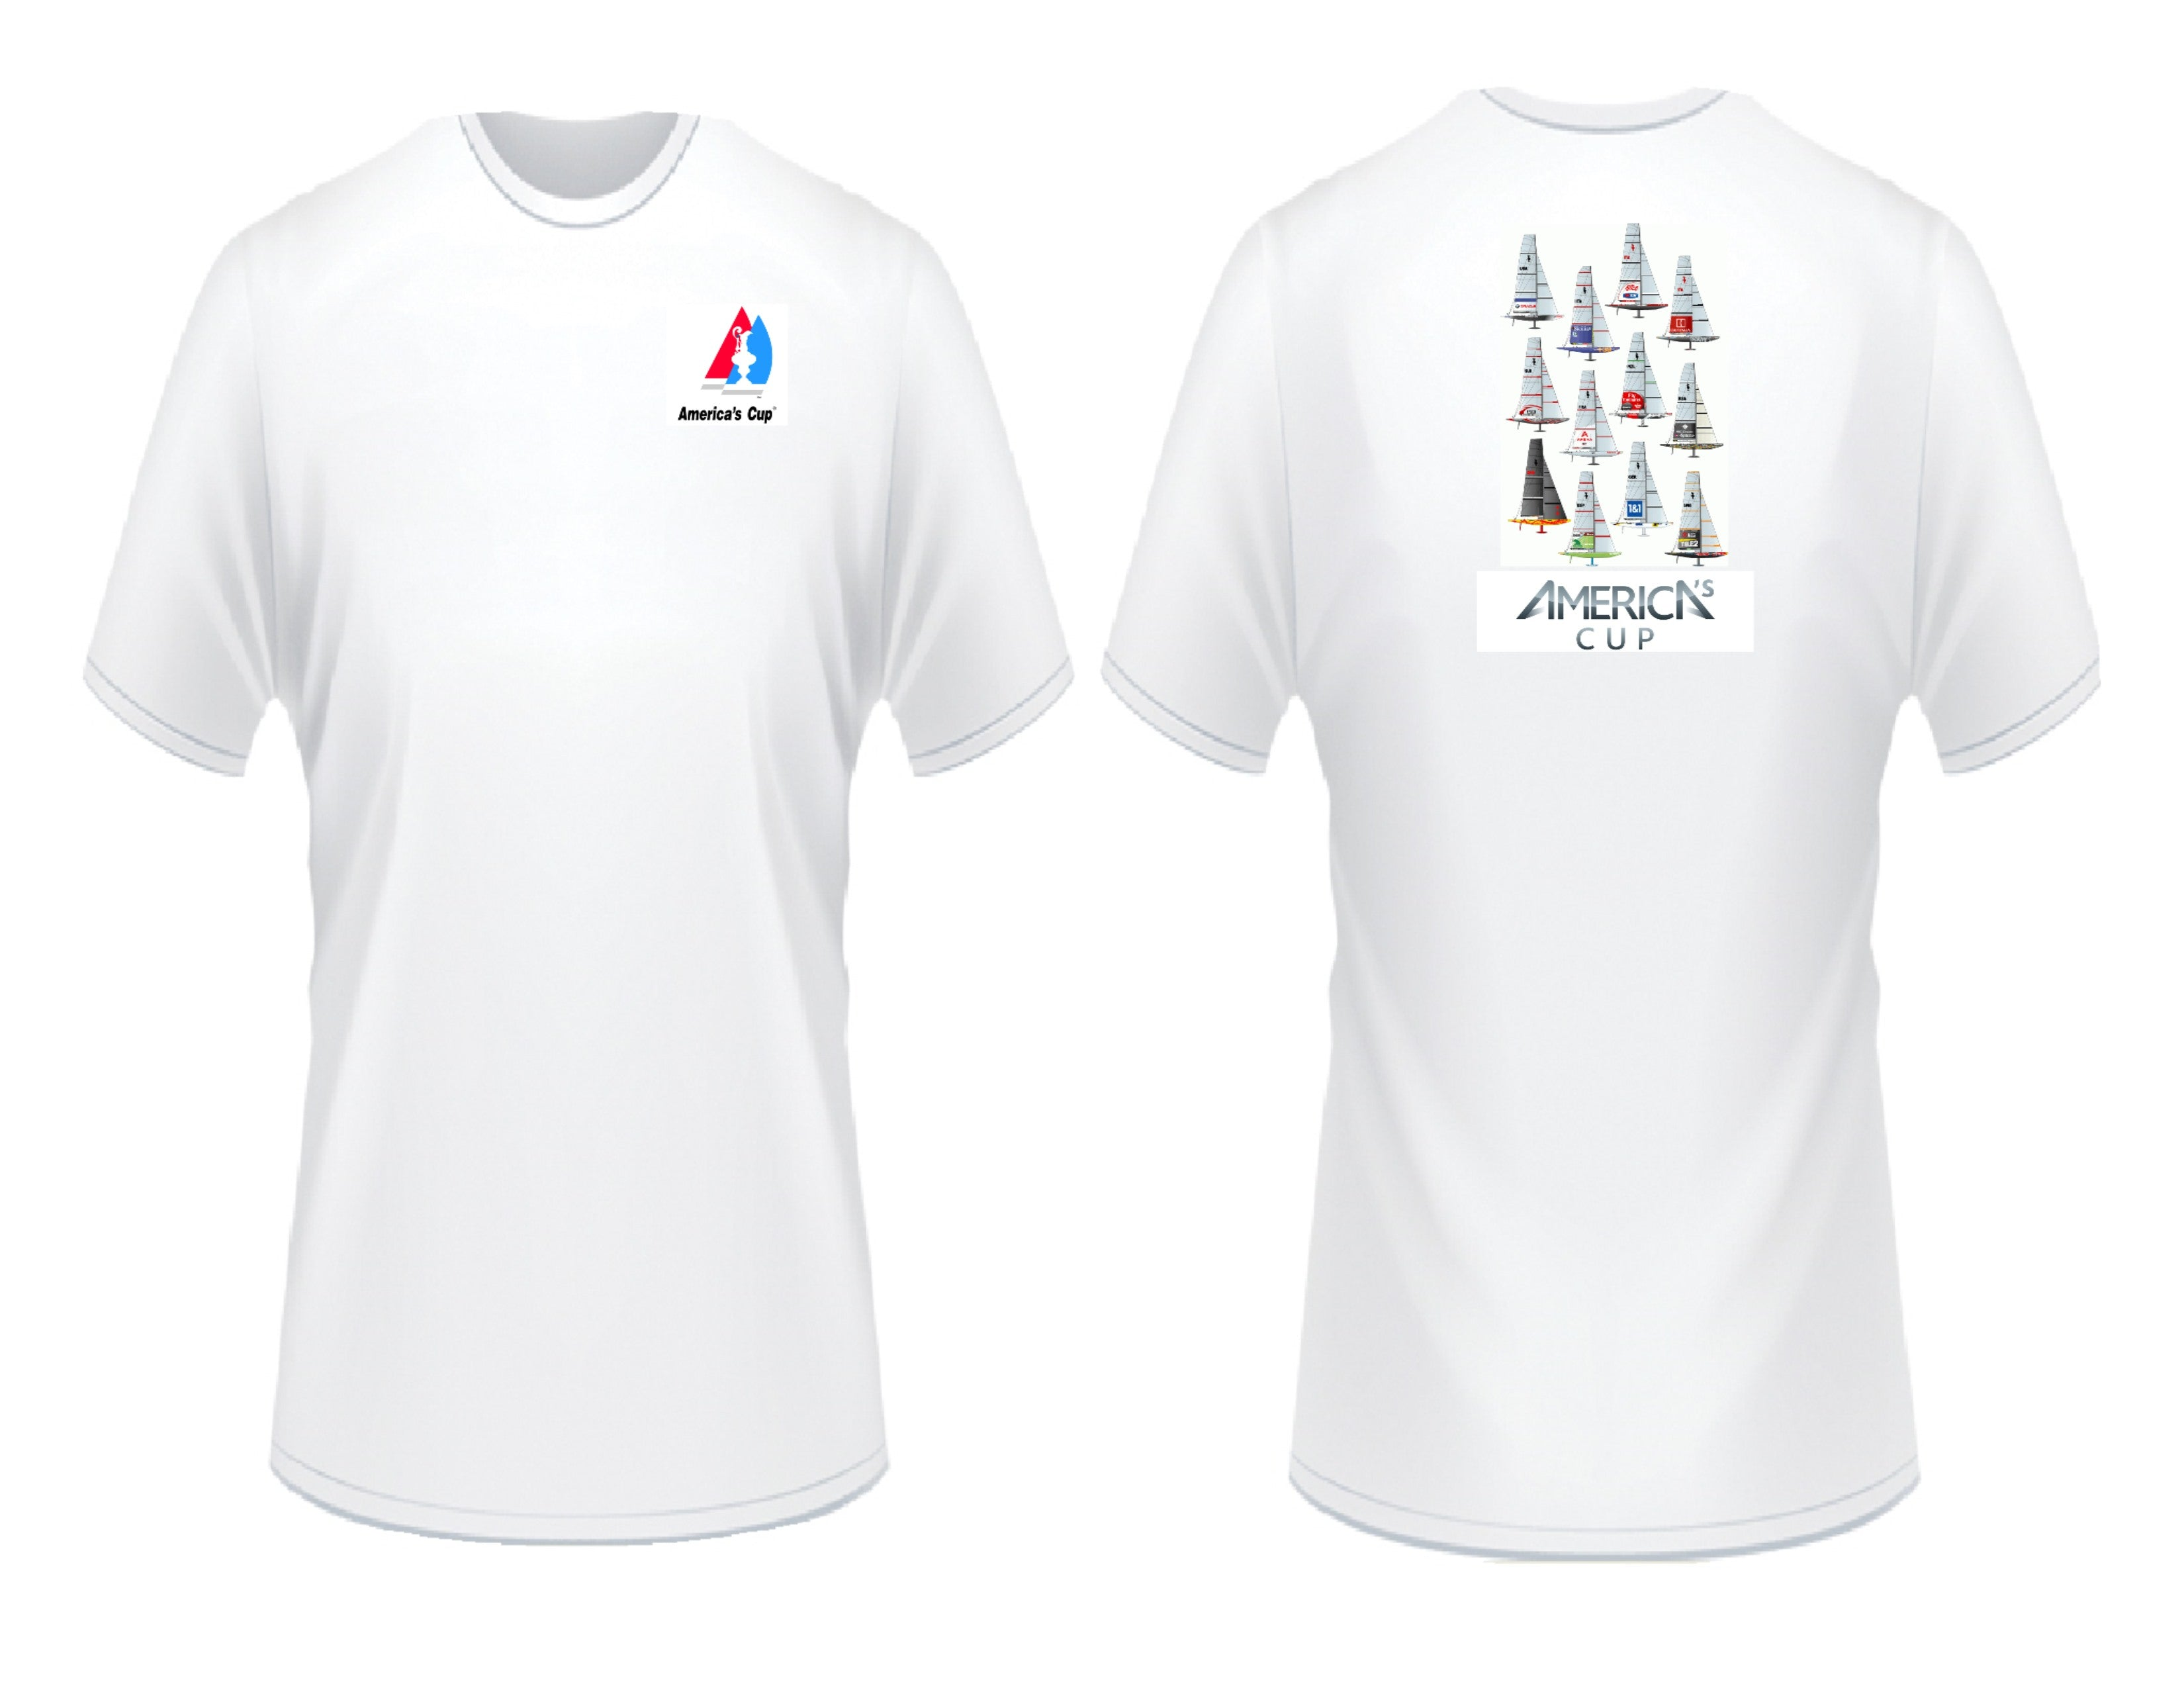 Americas Cup T-Shirt